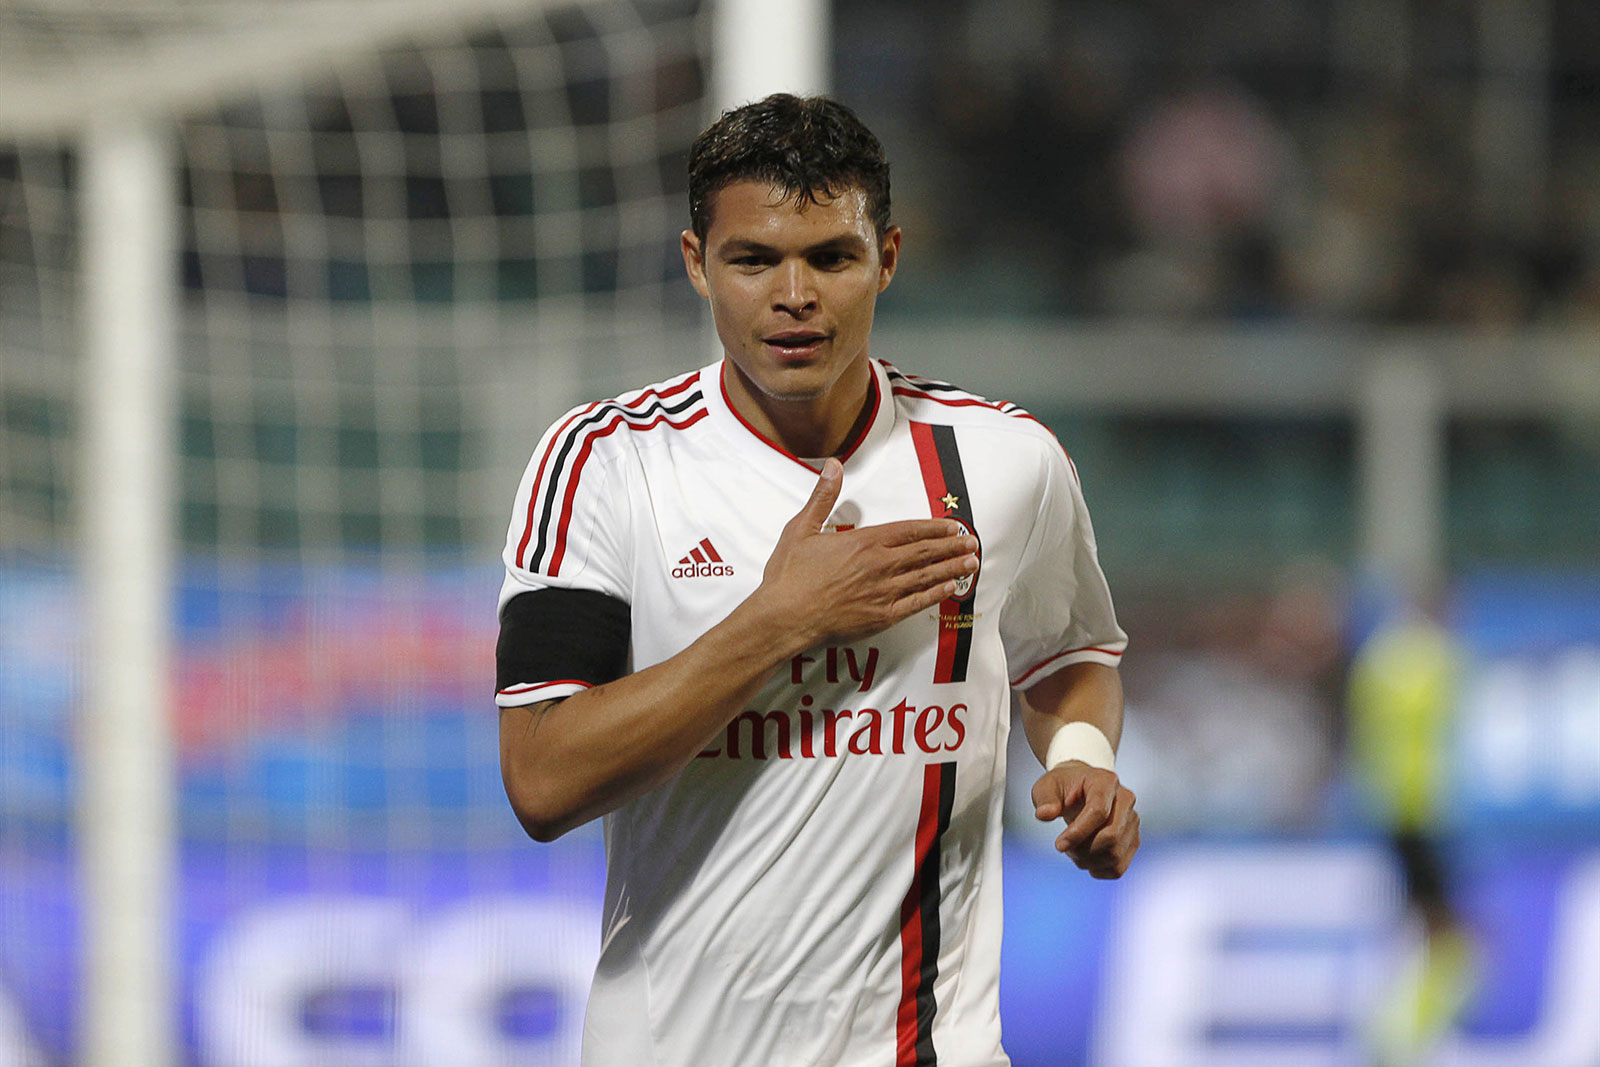 Thiago Silva celebrating during Palermo-Milan at Stadio Renzo Barbera on March 3, 2012. (MARCELLO PATERNOSTRO/AFP/Getty Images)